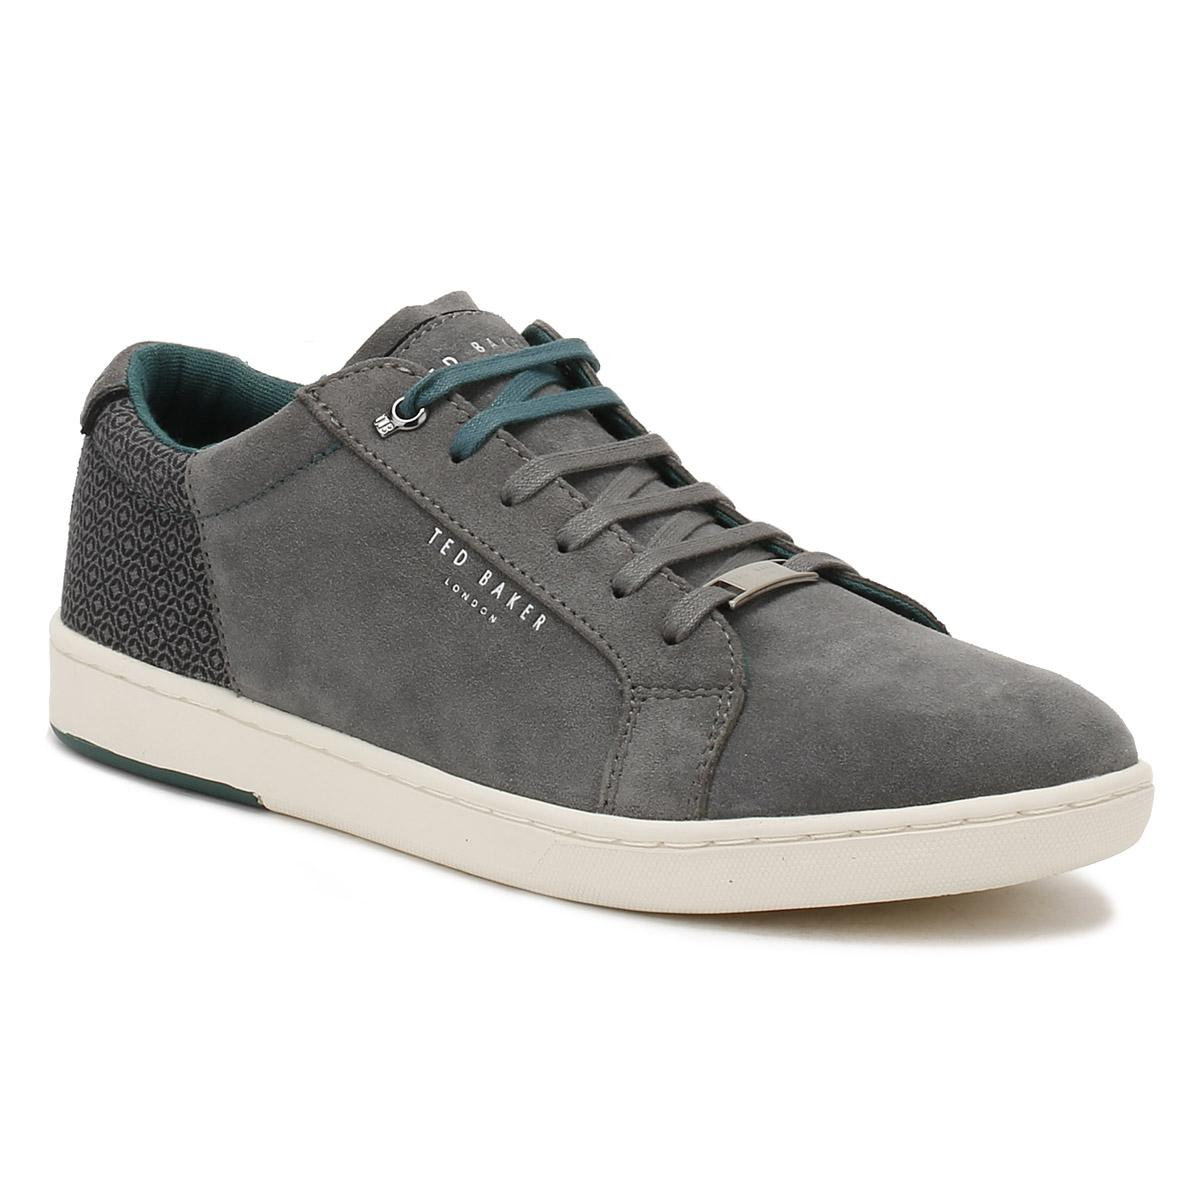 Ted Baker Grey Leather Mens Shoes